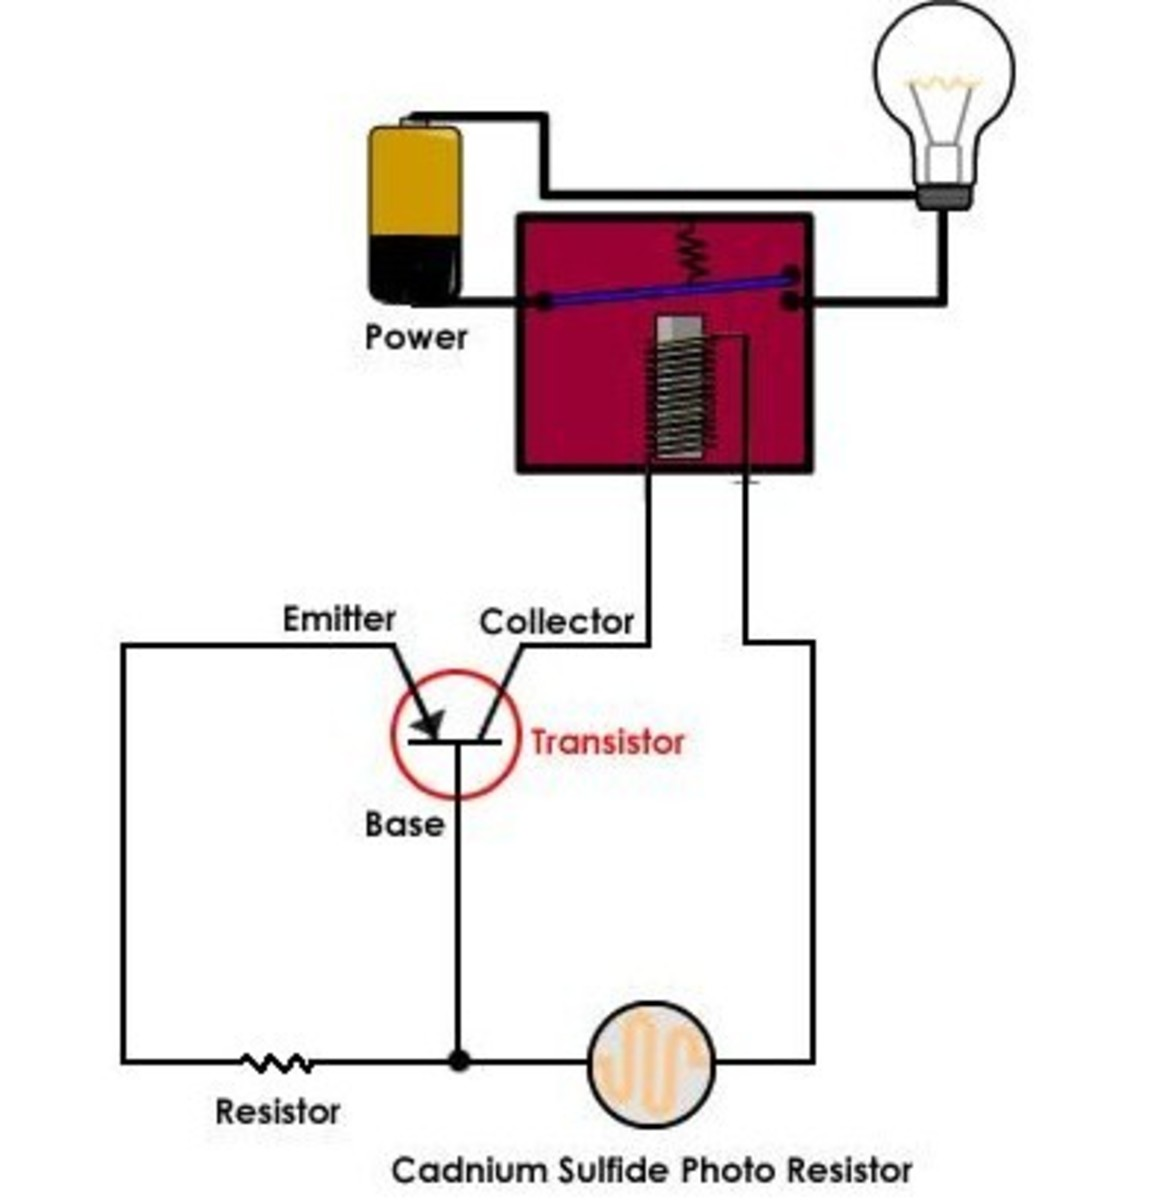 A simple circuit showing the photodetector, transistor and relay.